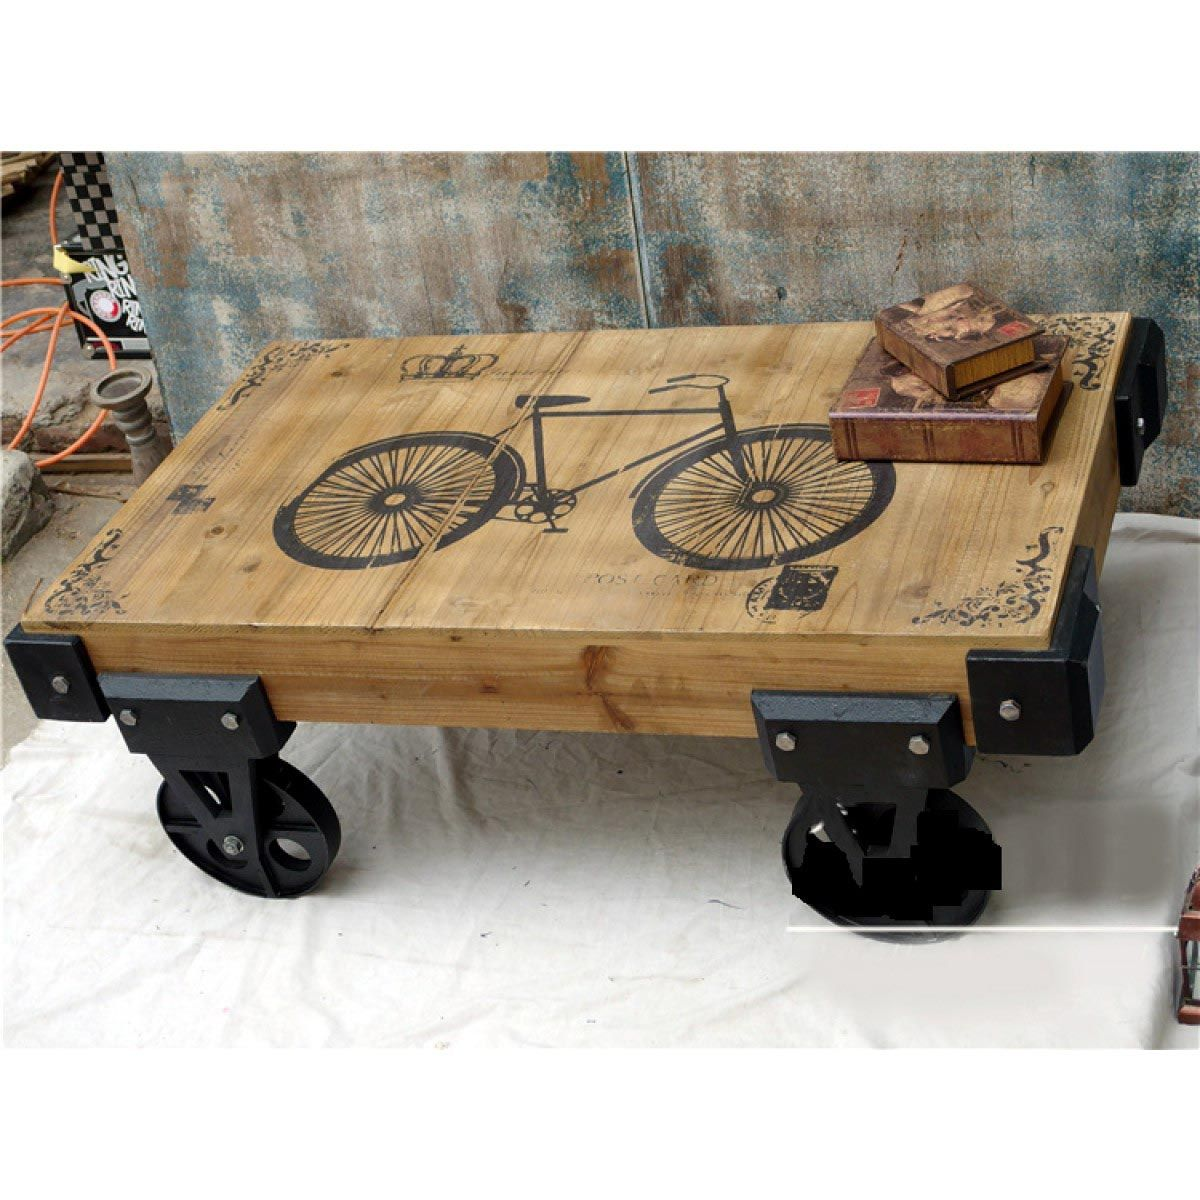 Cast Iron Wheels For Coffee Table Coffee Table Design Ideas Iron Coffee Table Coffee Table With Wheels Wooden Coffee Table